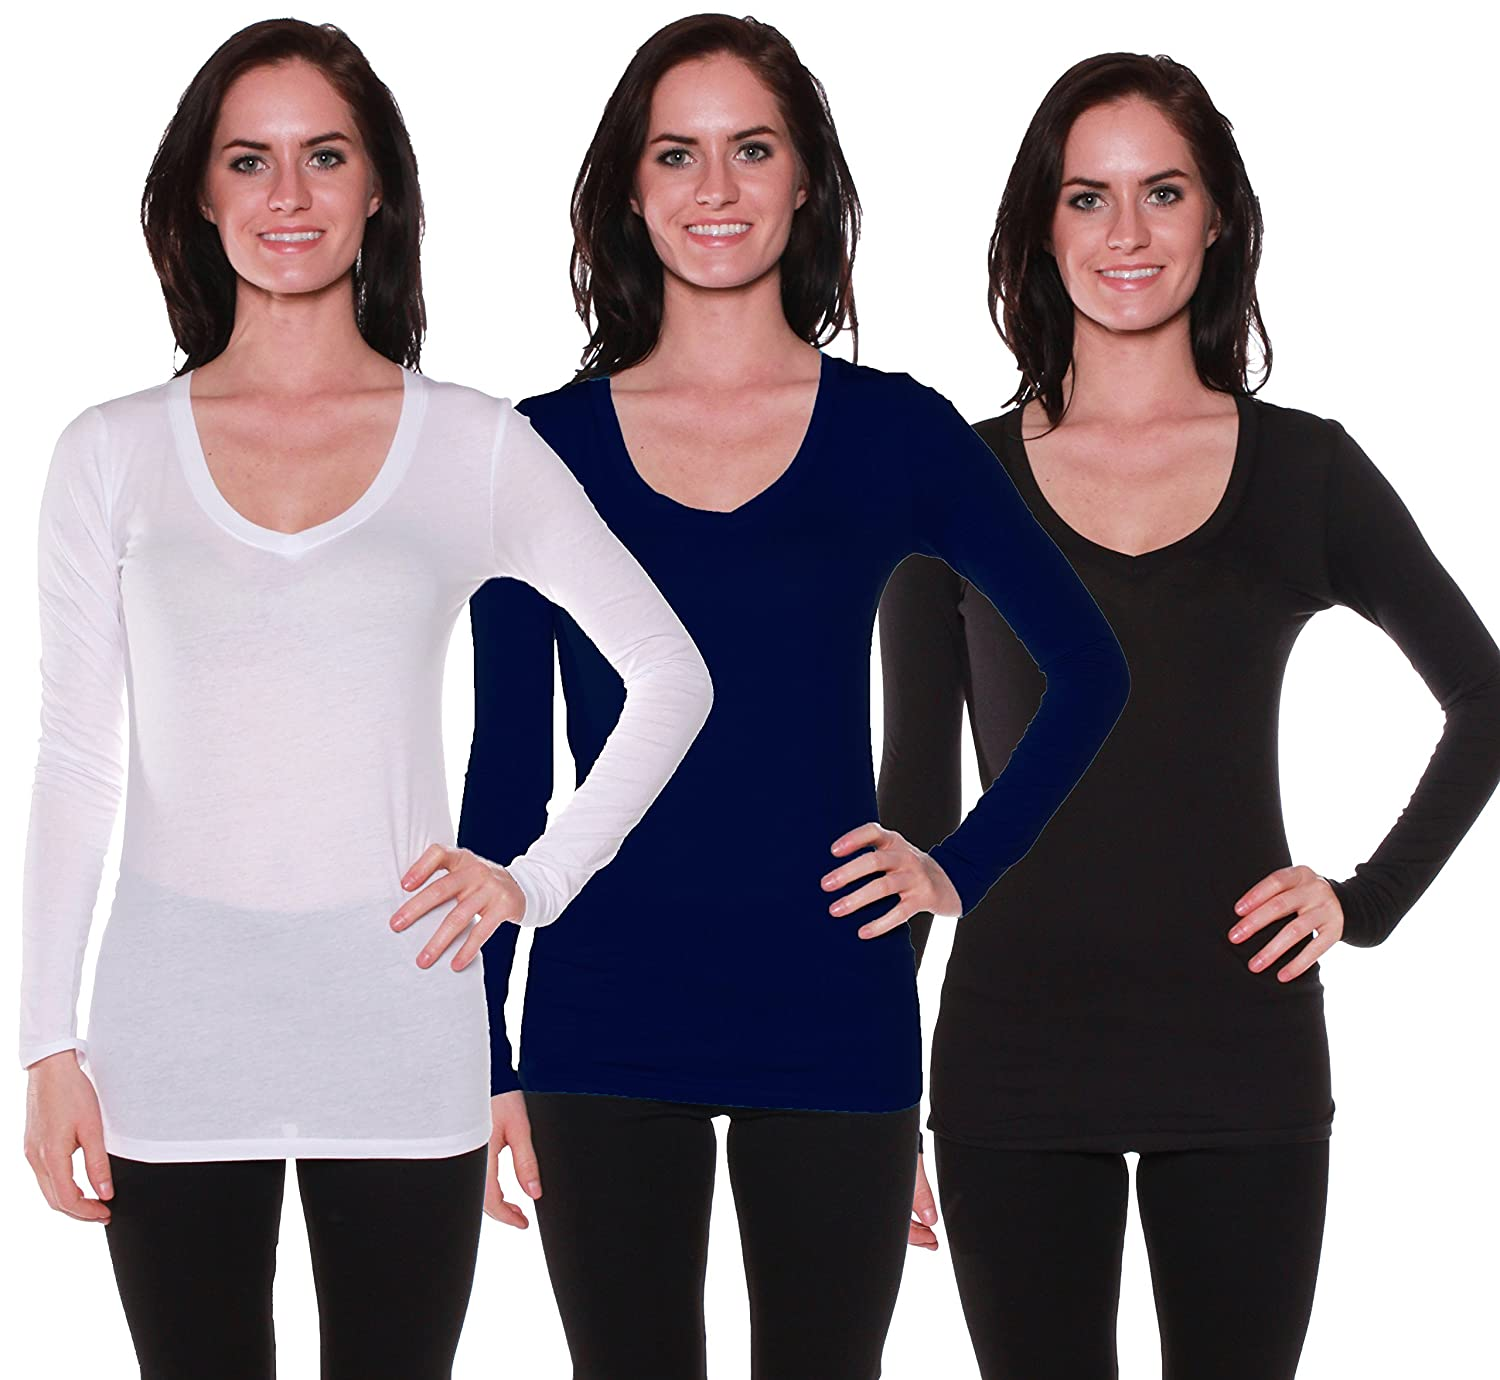 Active Basic Women's Long Sleeve V-Neck T Shirts 3 Pack(Wht/Navy/Blk-S)